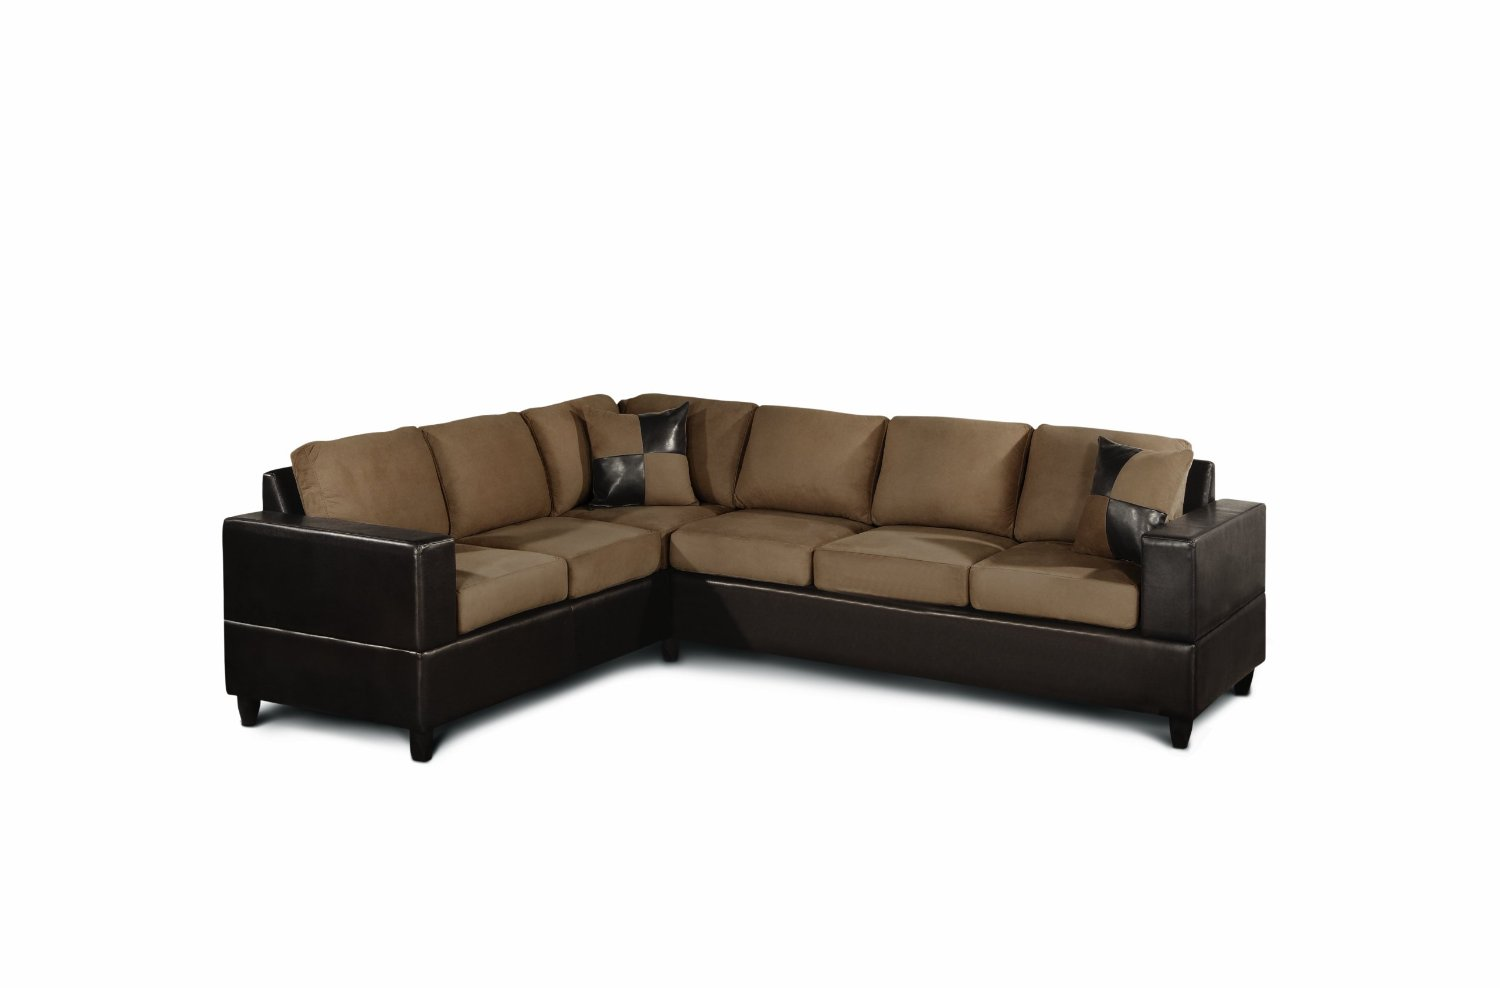 Buy Small Sofa Online L Shaped